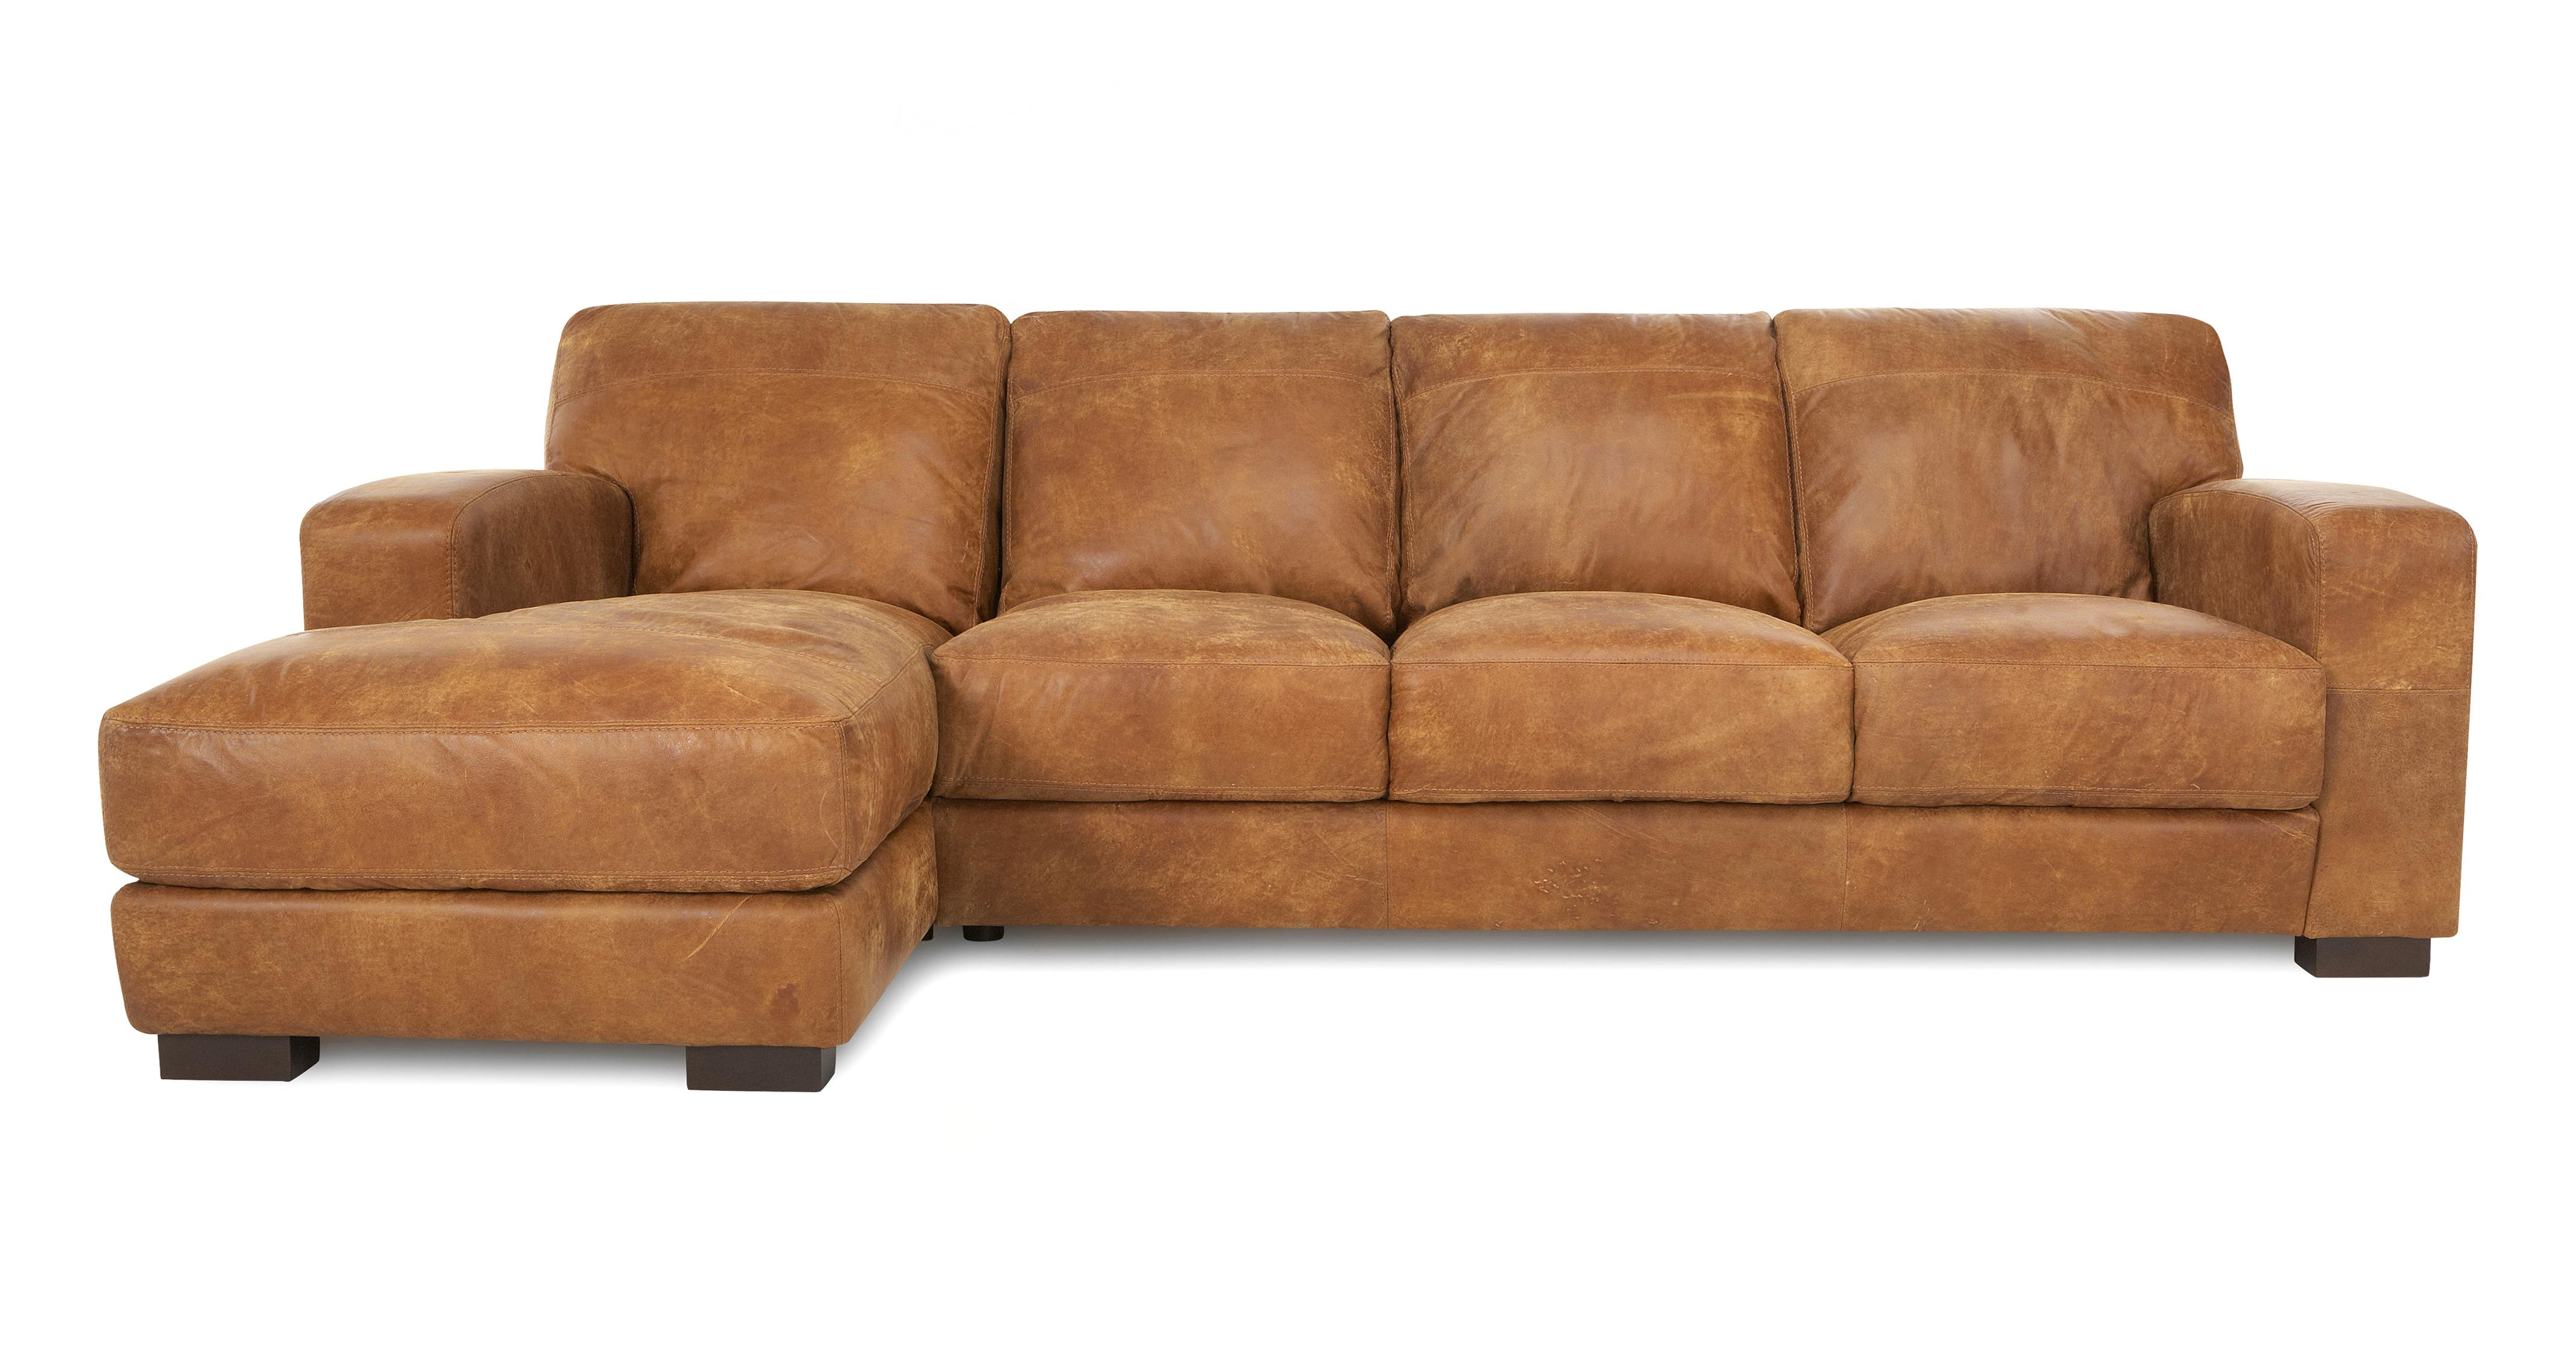 Conforama Sofa Gabon Caesar Left Hand Facing Chaise End Sofa